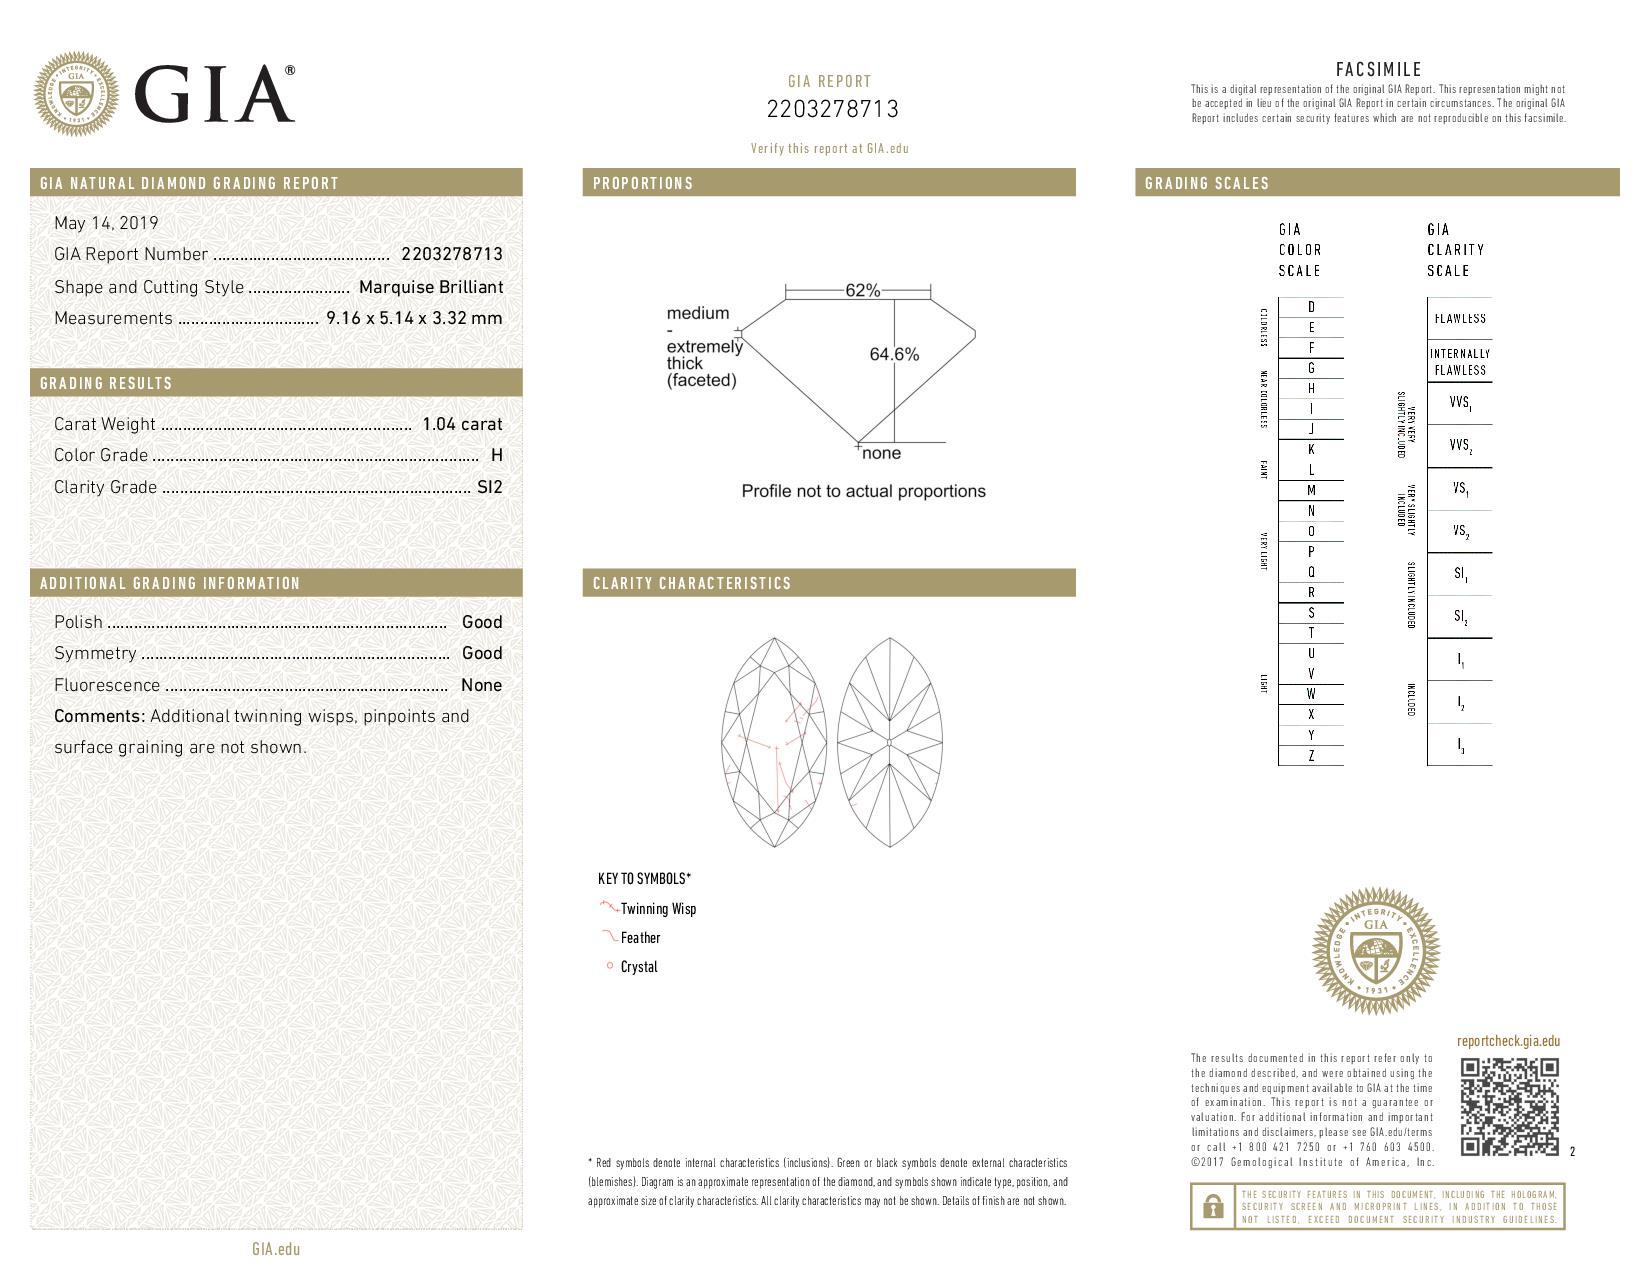 This is a 1.04 carat marquise shape, H color, SI2 clarity natural diamond accompanied by a GIA grading report.